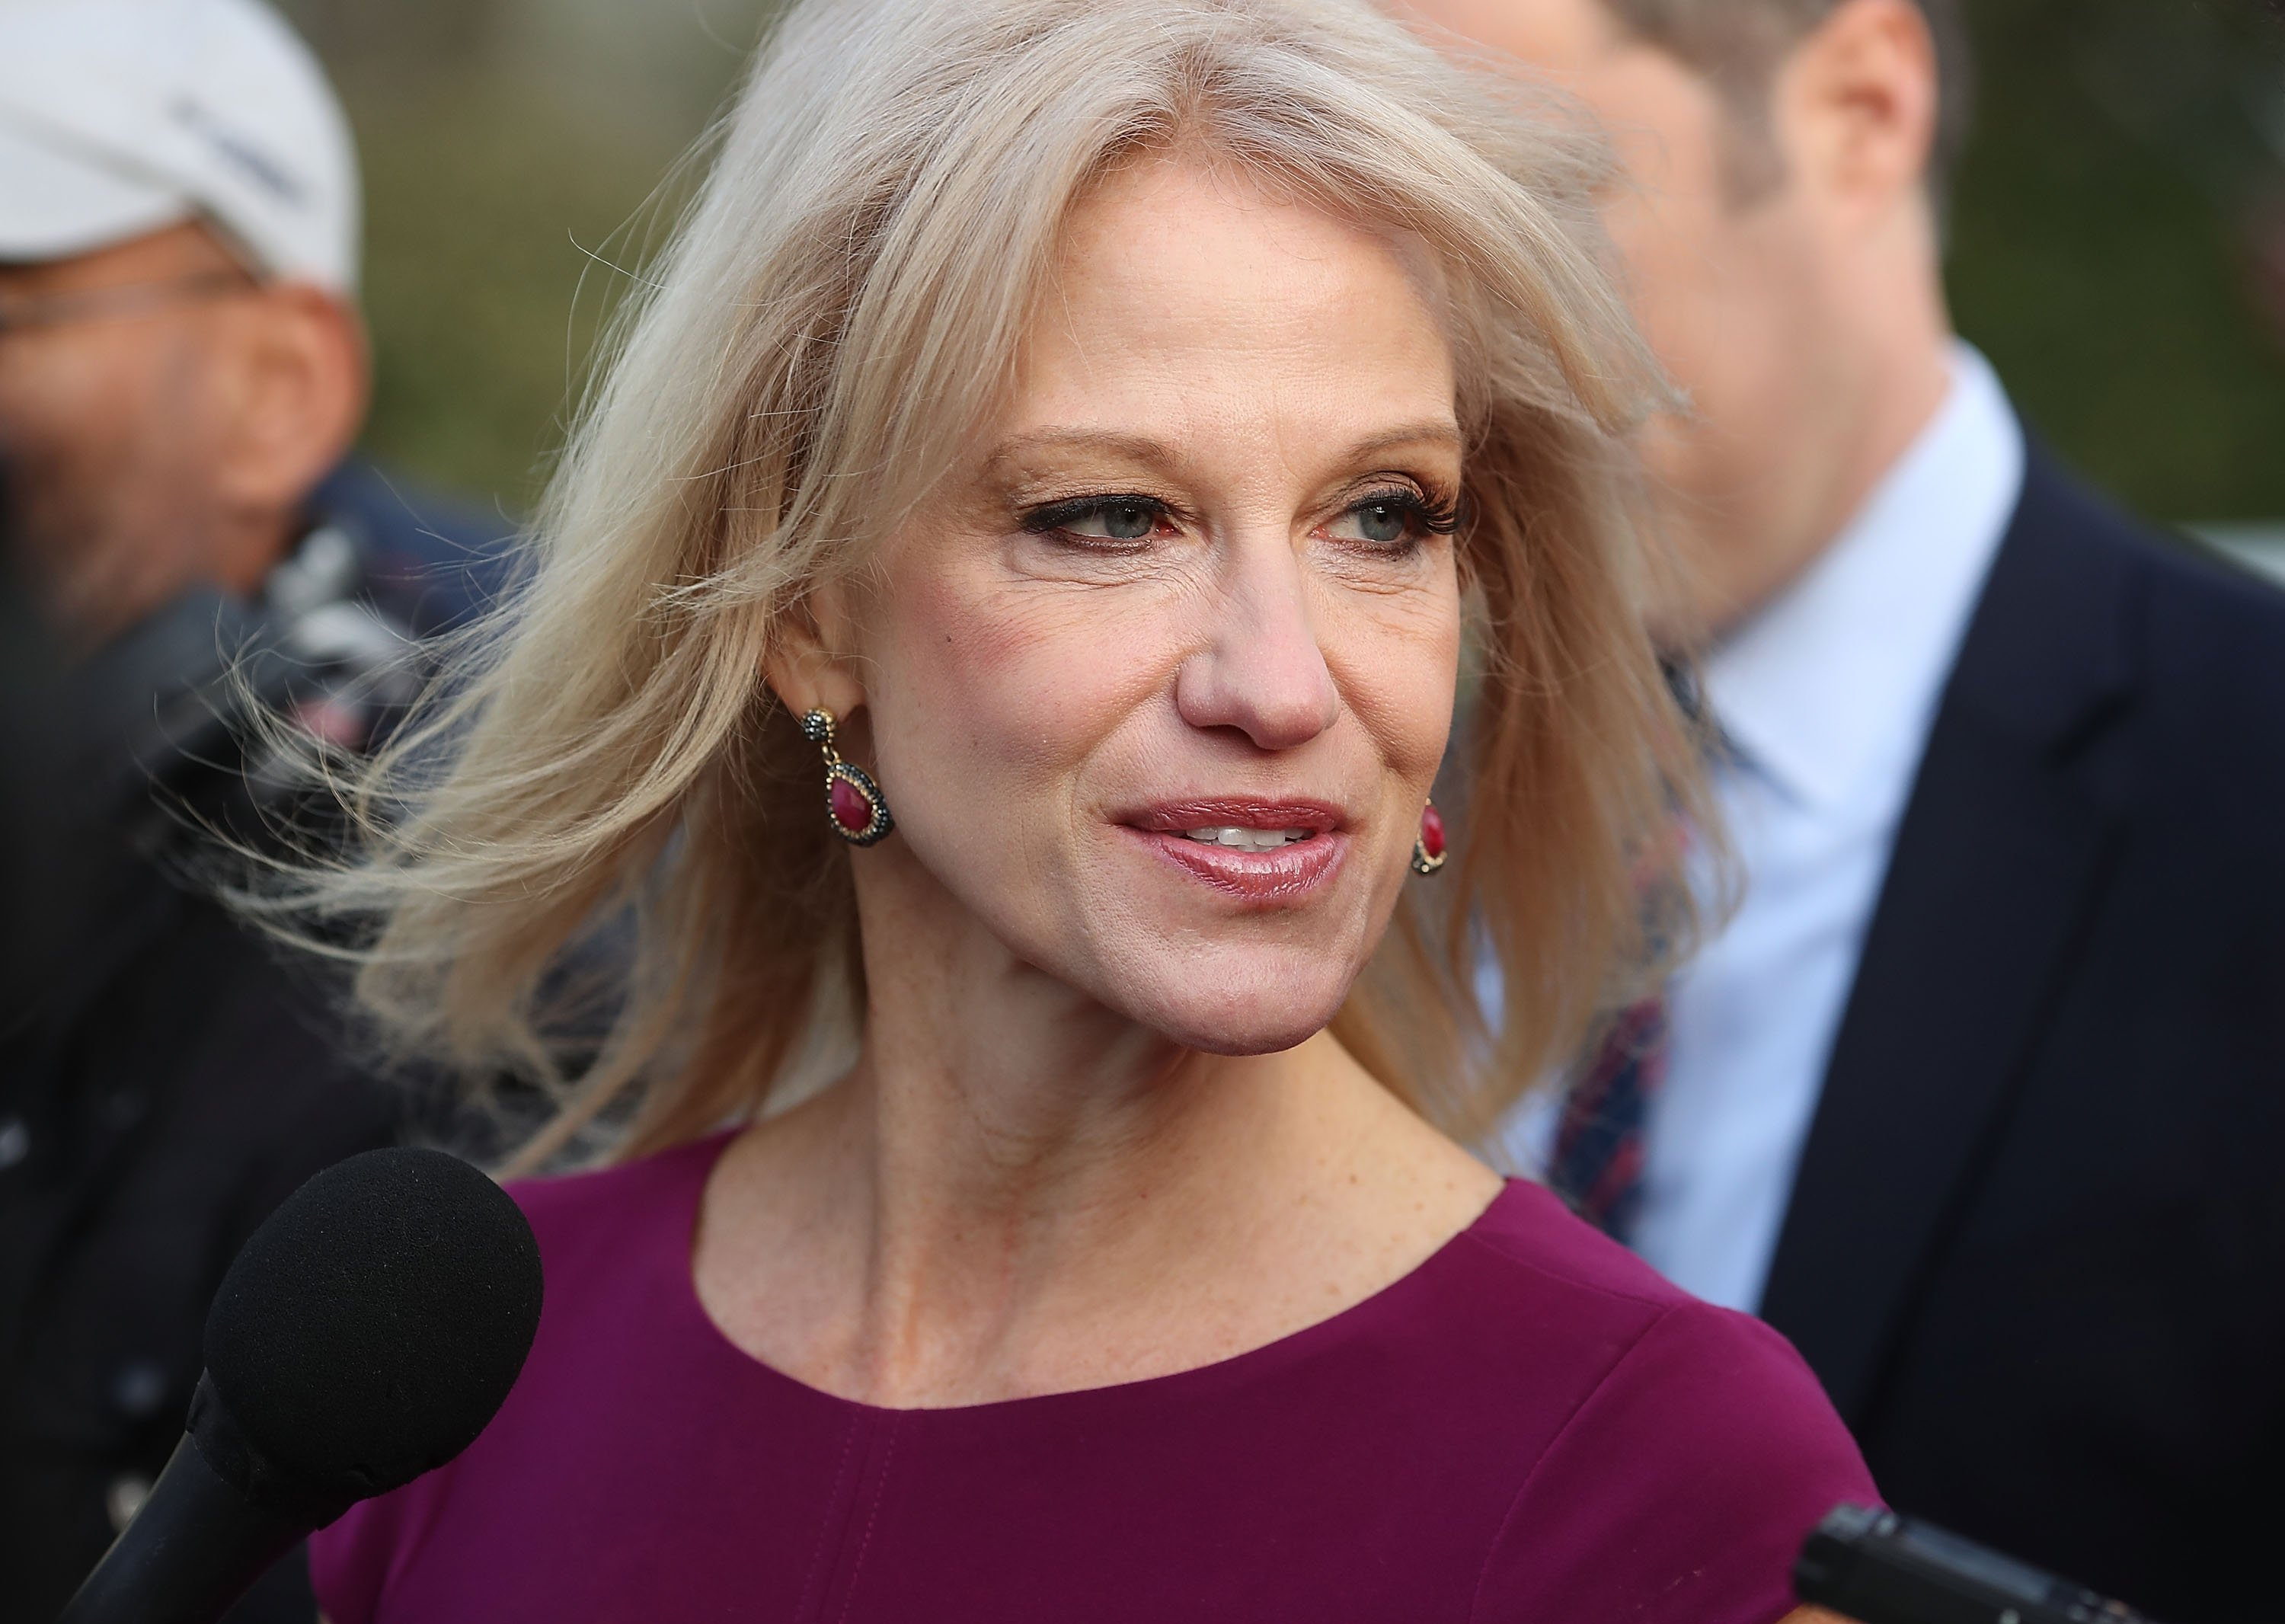 White House counselor Kellyanne Conway speaks to reporters on the White House driveway after doing a television interview in April ( Credit: Getty Images)